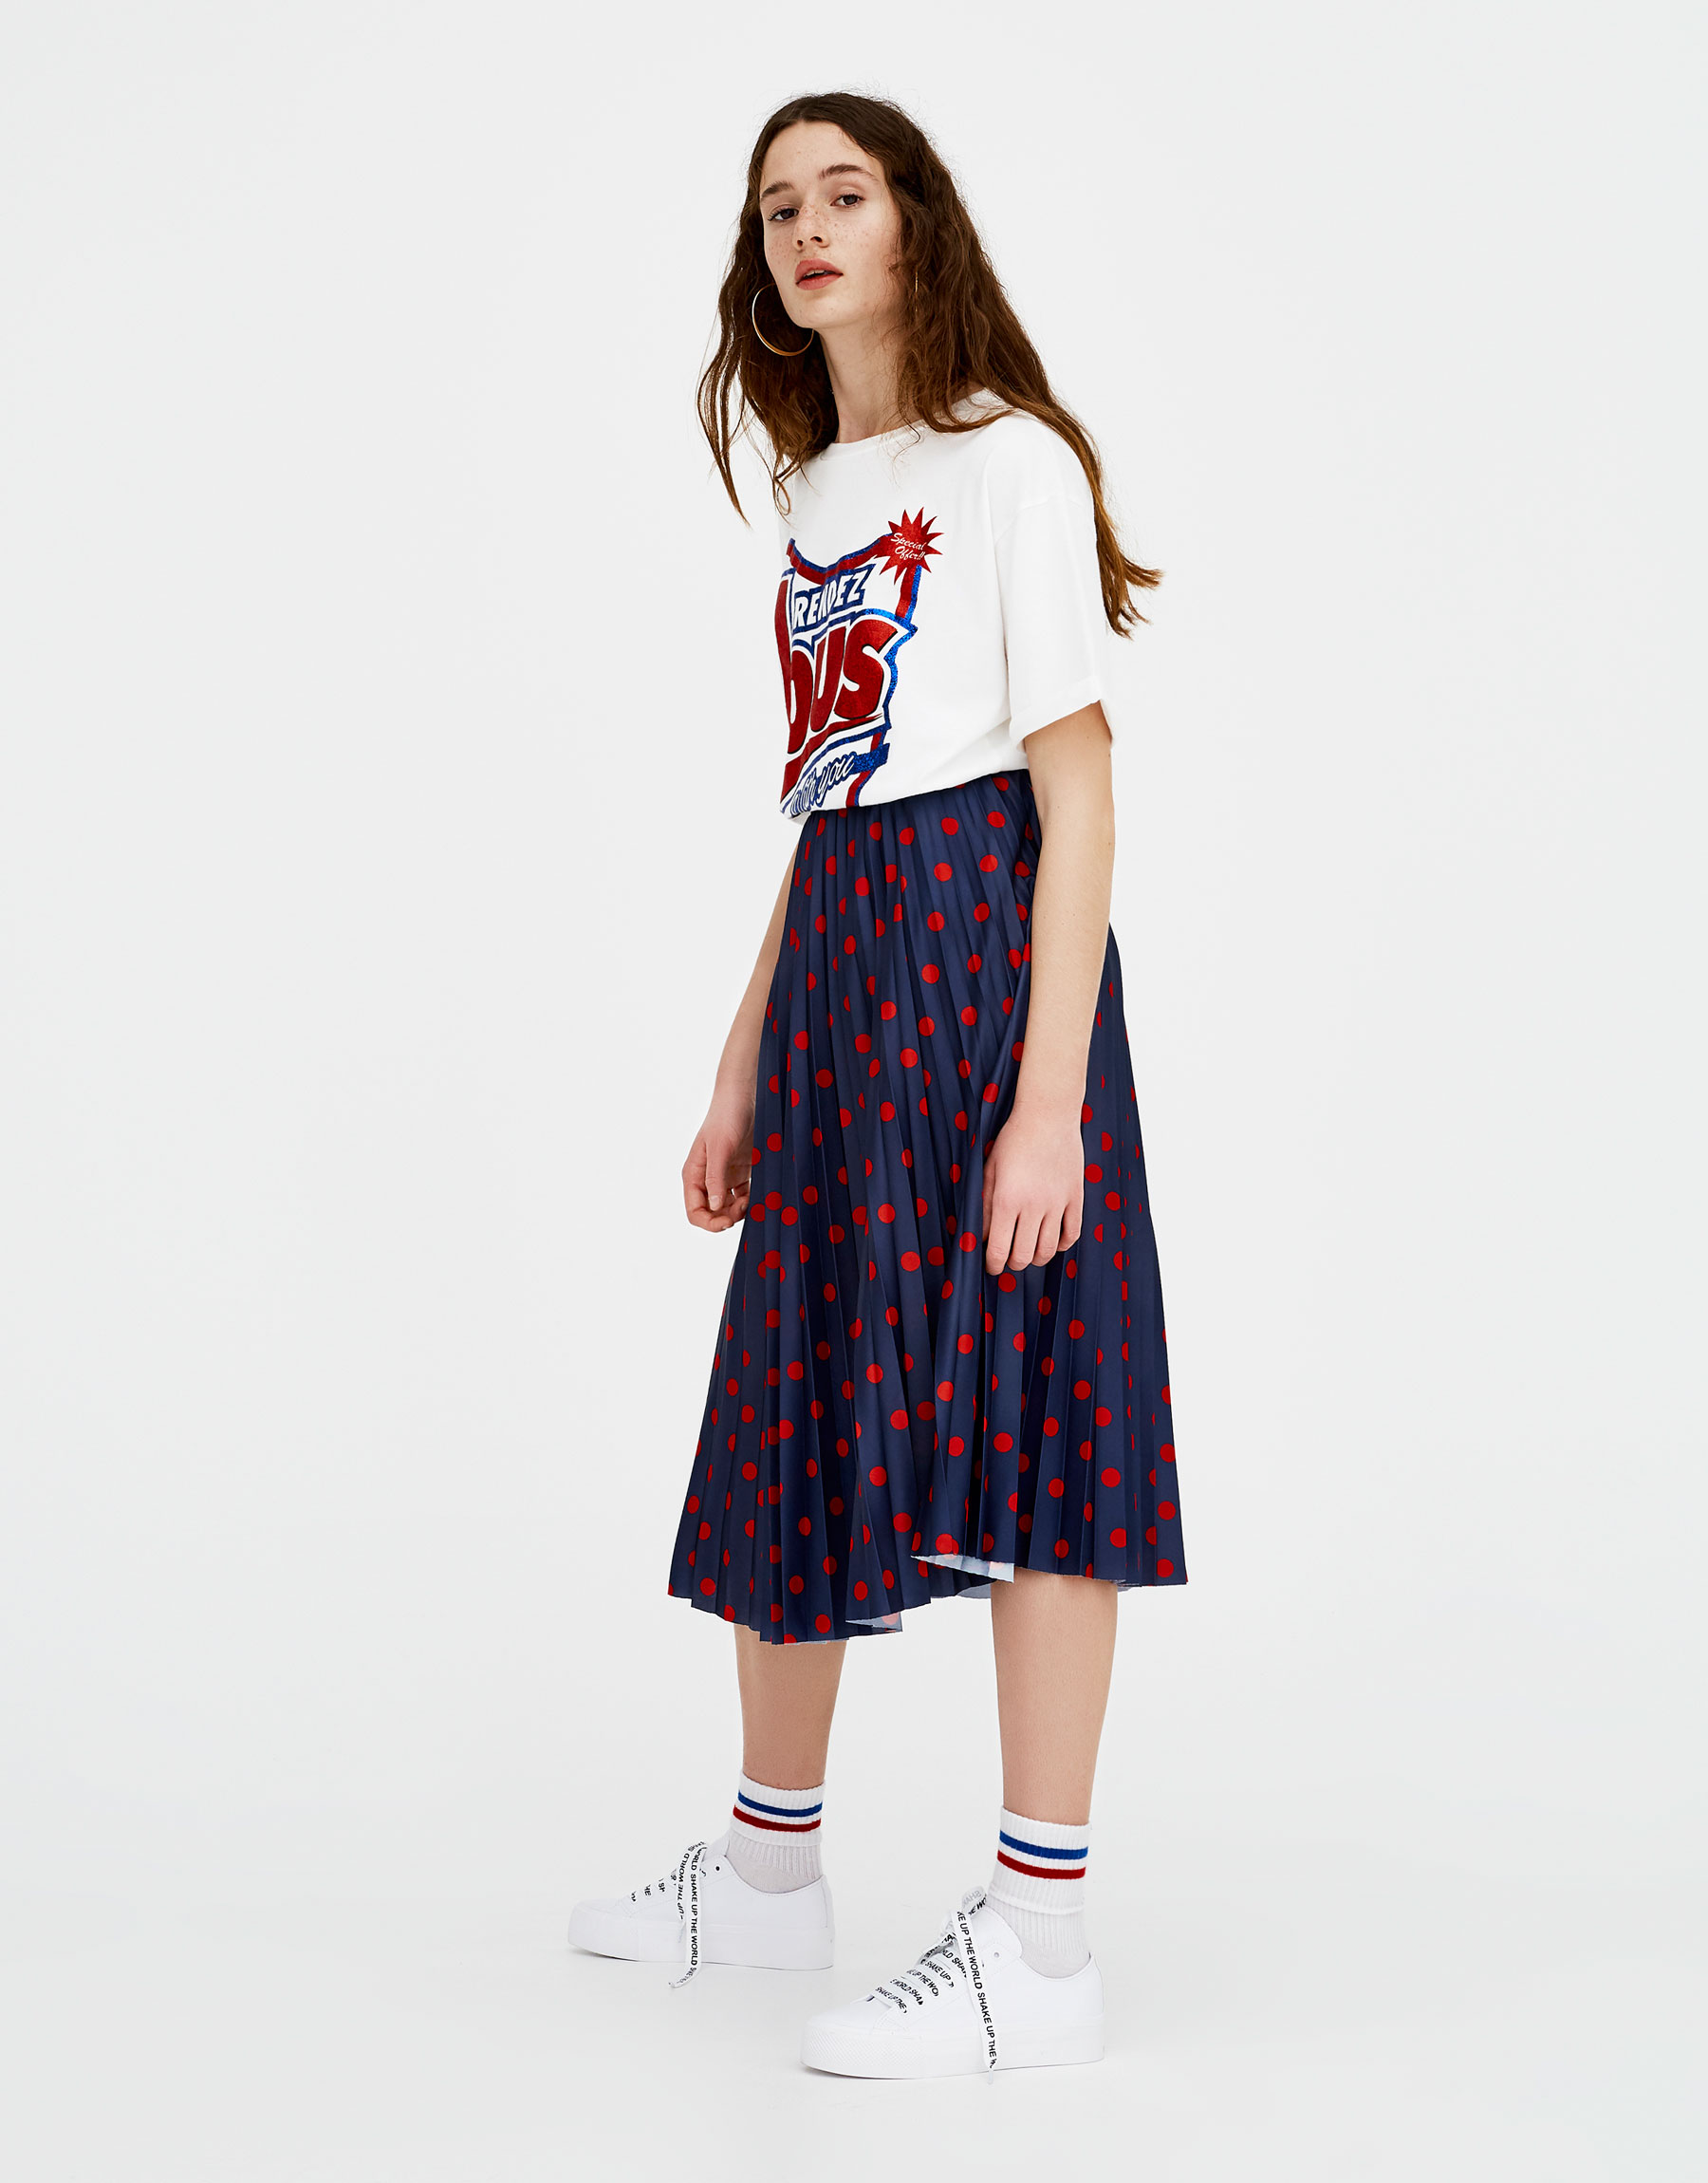 94cd6951d9 Pull & Bear Pleated skirt with polka dot print at £19.99   love the ...